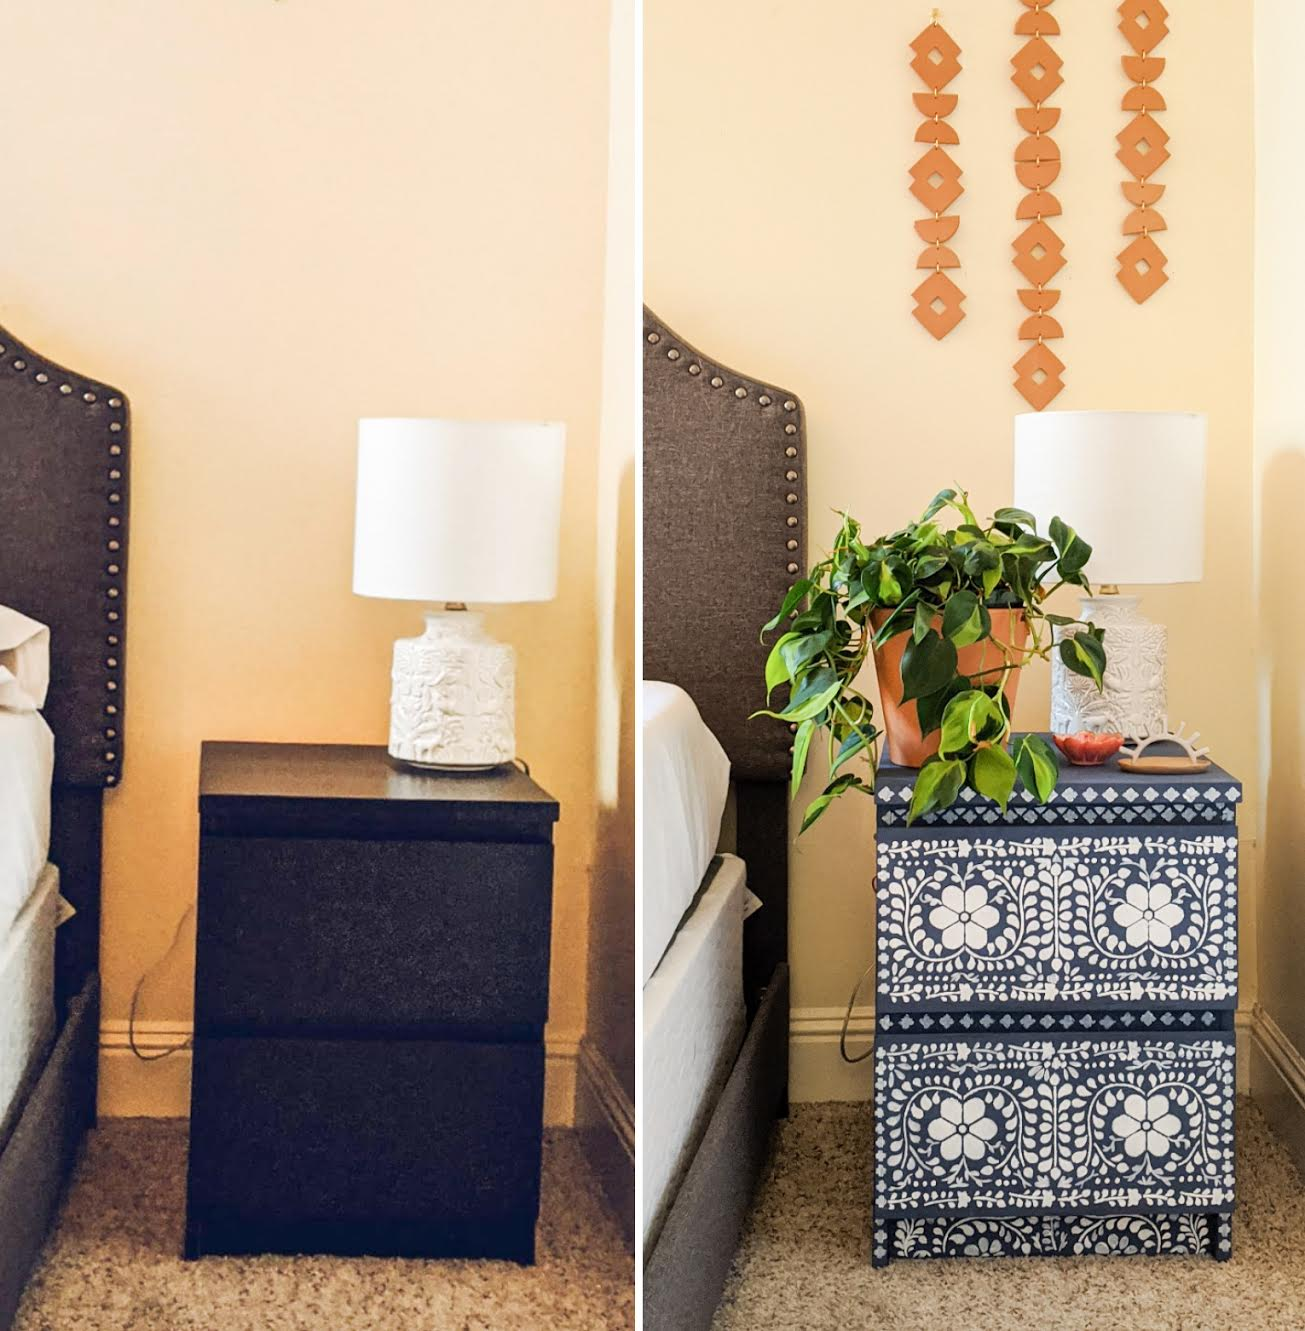 painted nightstand before and after